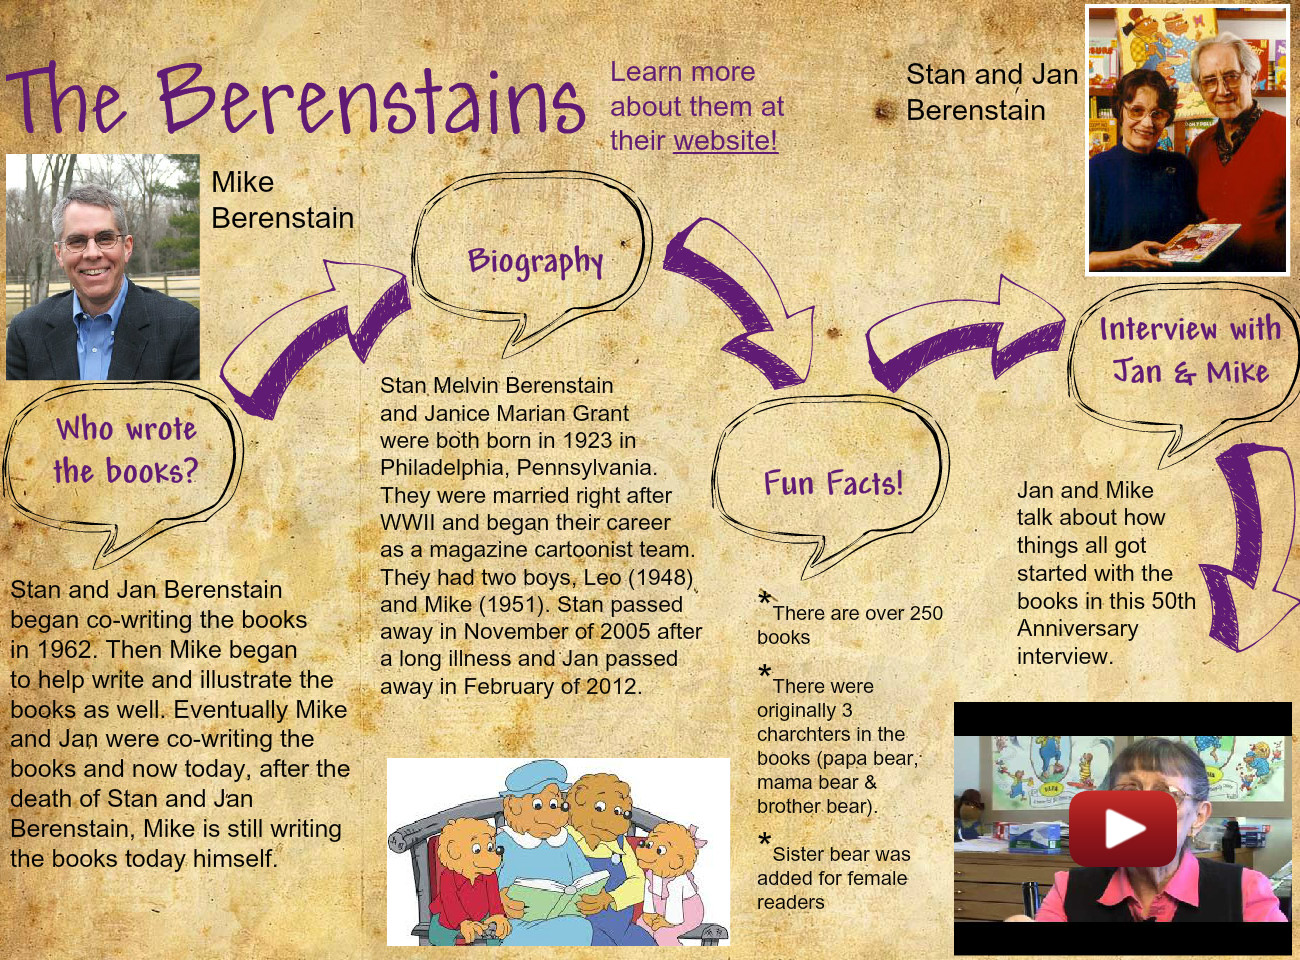 The Berenstains